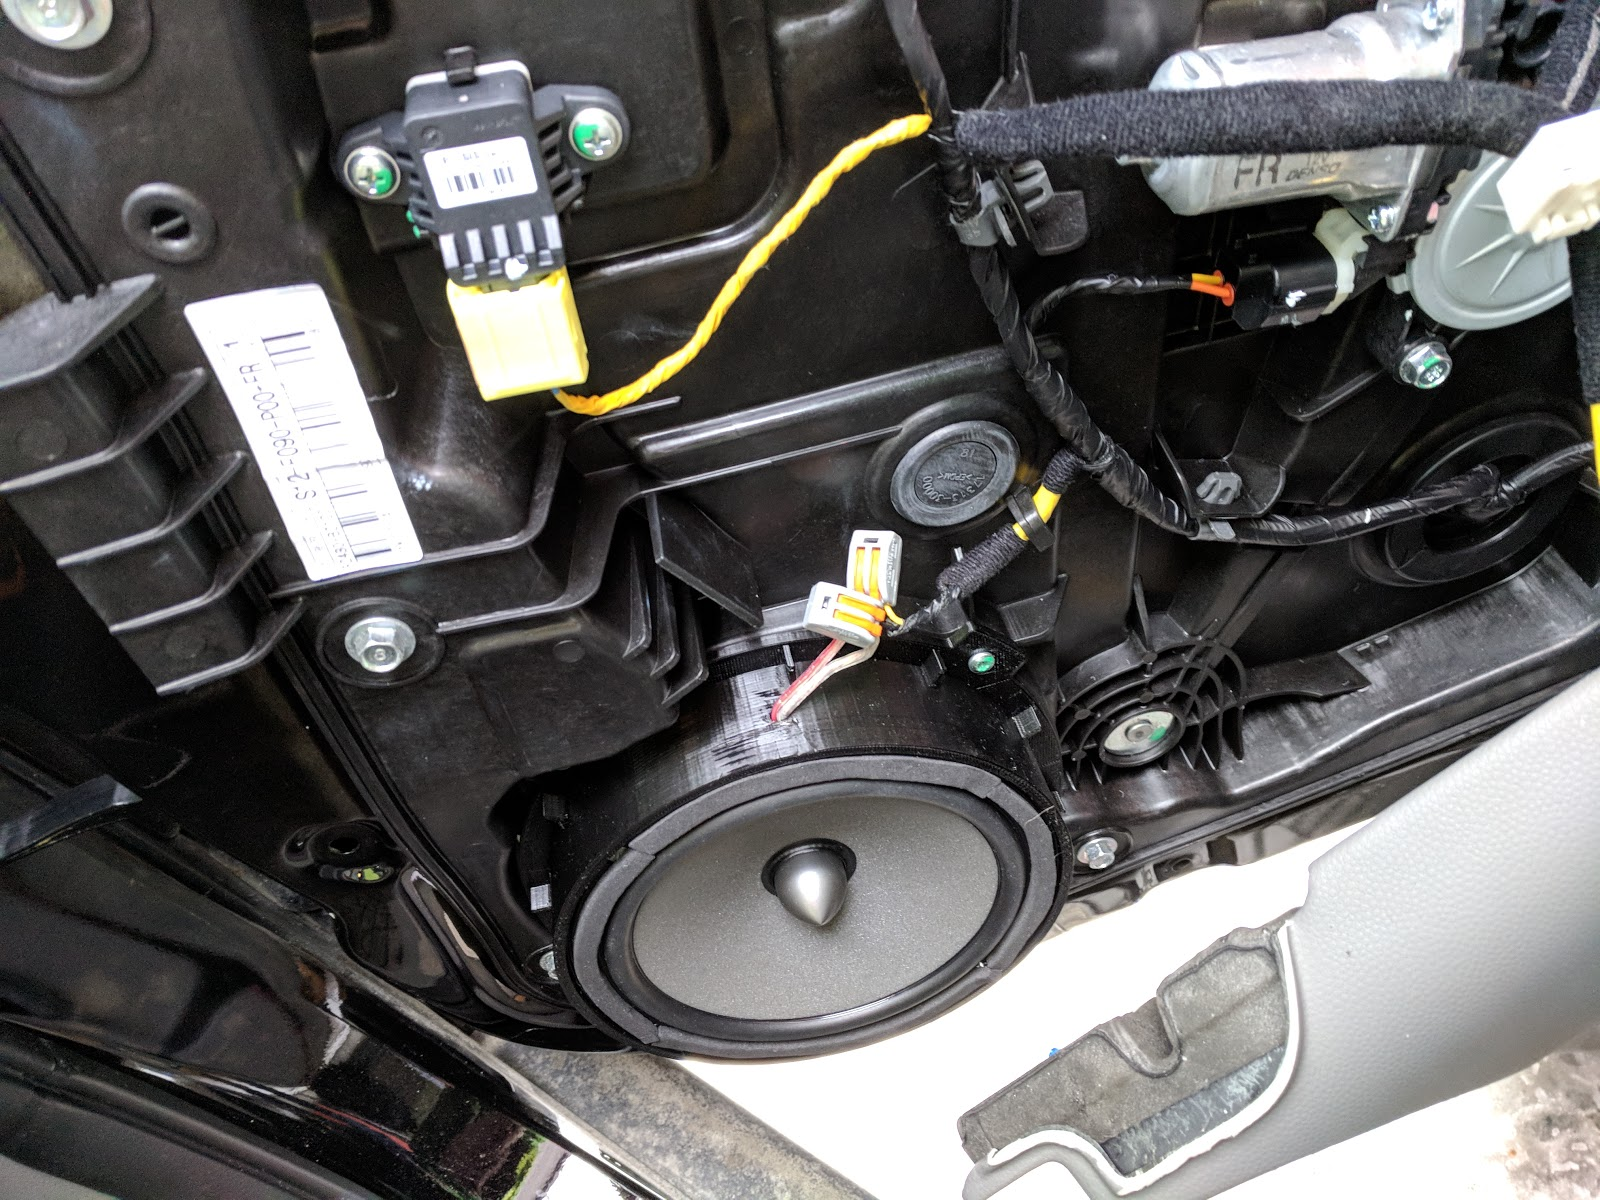 The Personal Webpage Of Ystein Kia Soul Ev Speaker Upgrade Stereo System Wiring I Put Adapters On Thingverse If Someone Wants To Do Same Guess It Will Fit All Kias With Original Woofer